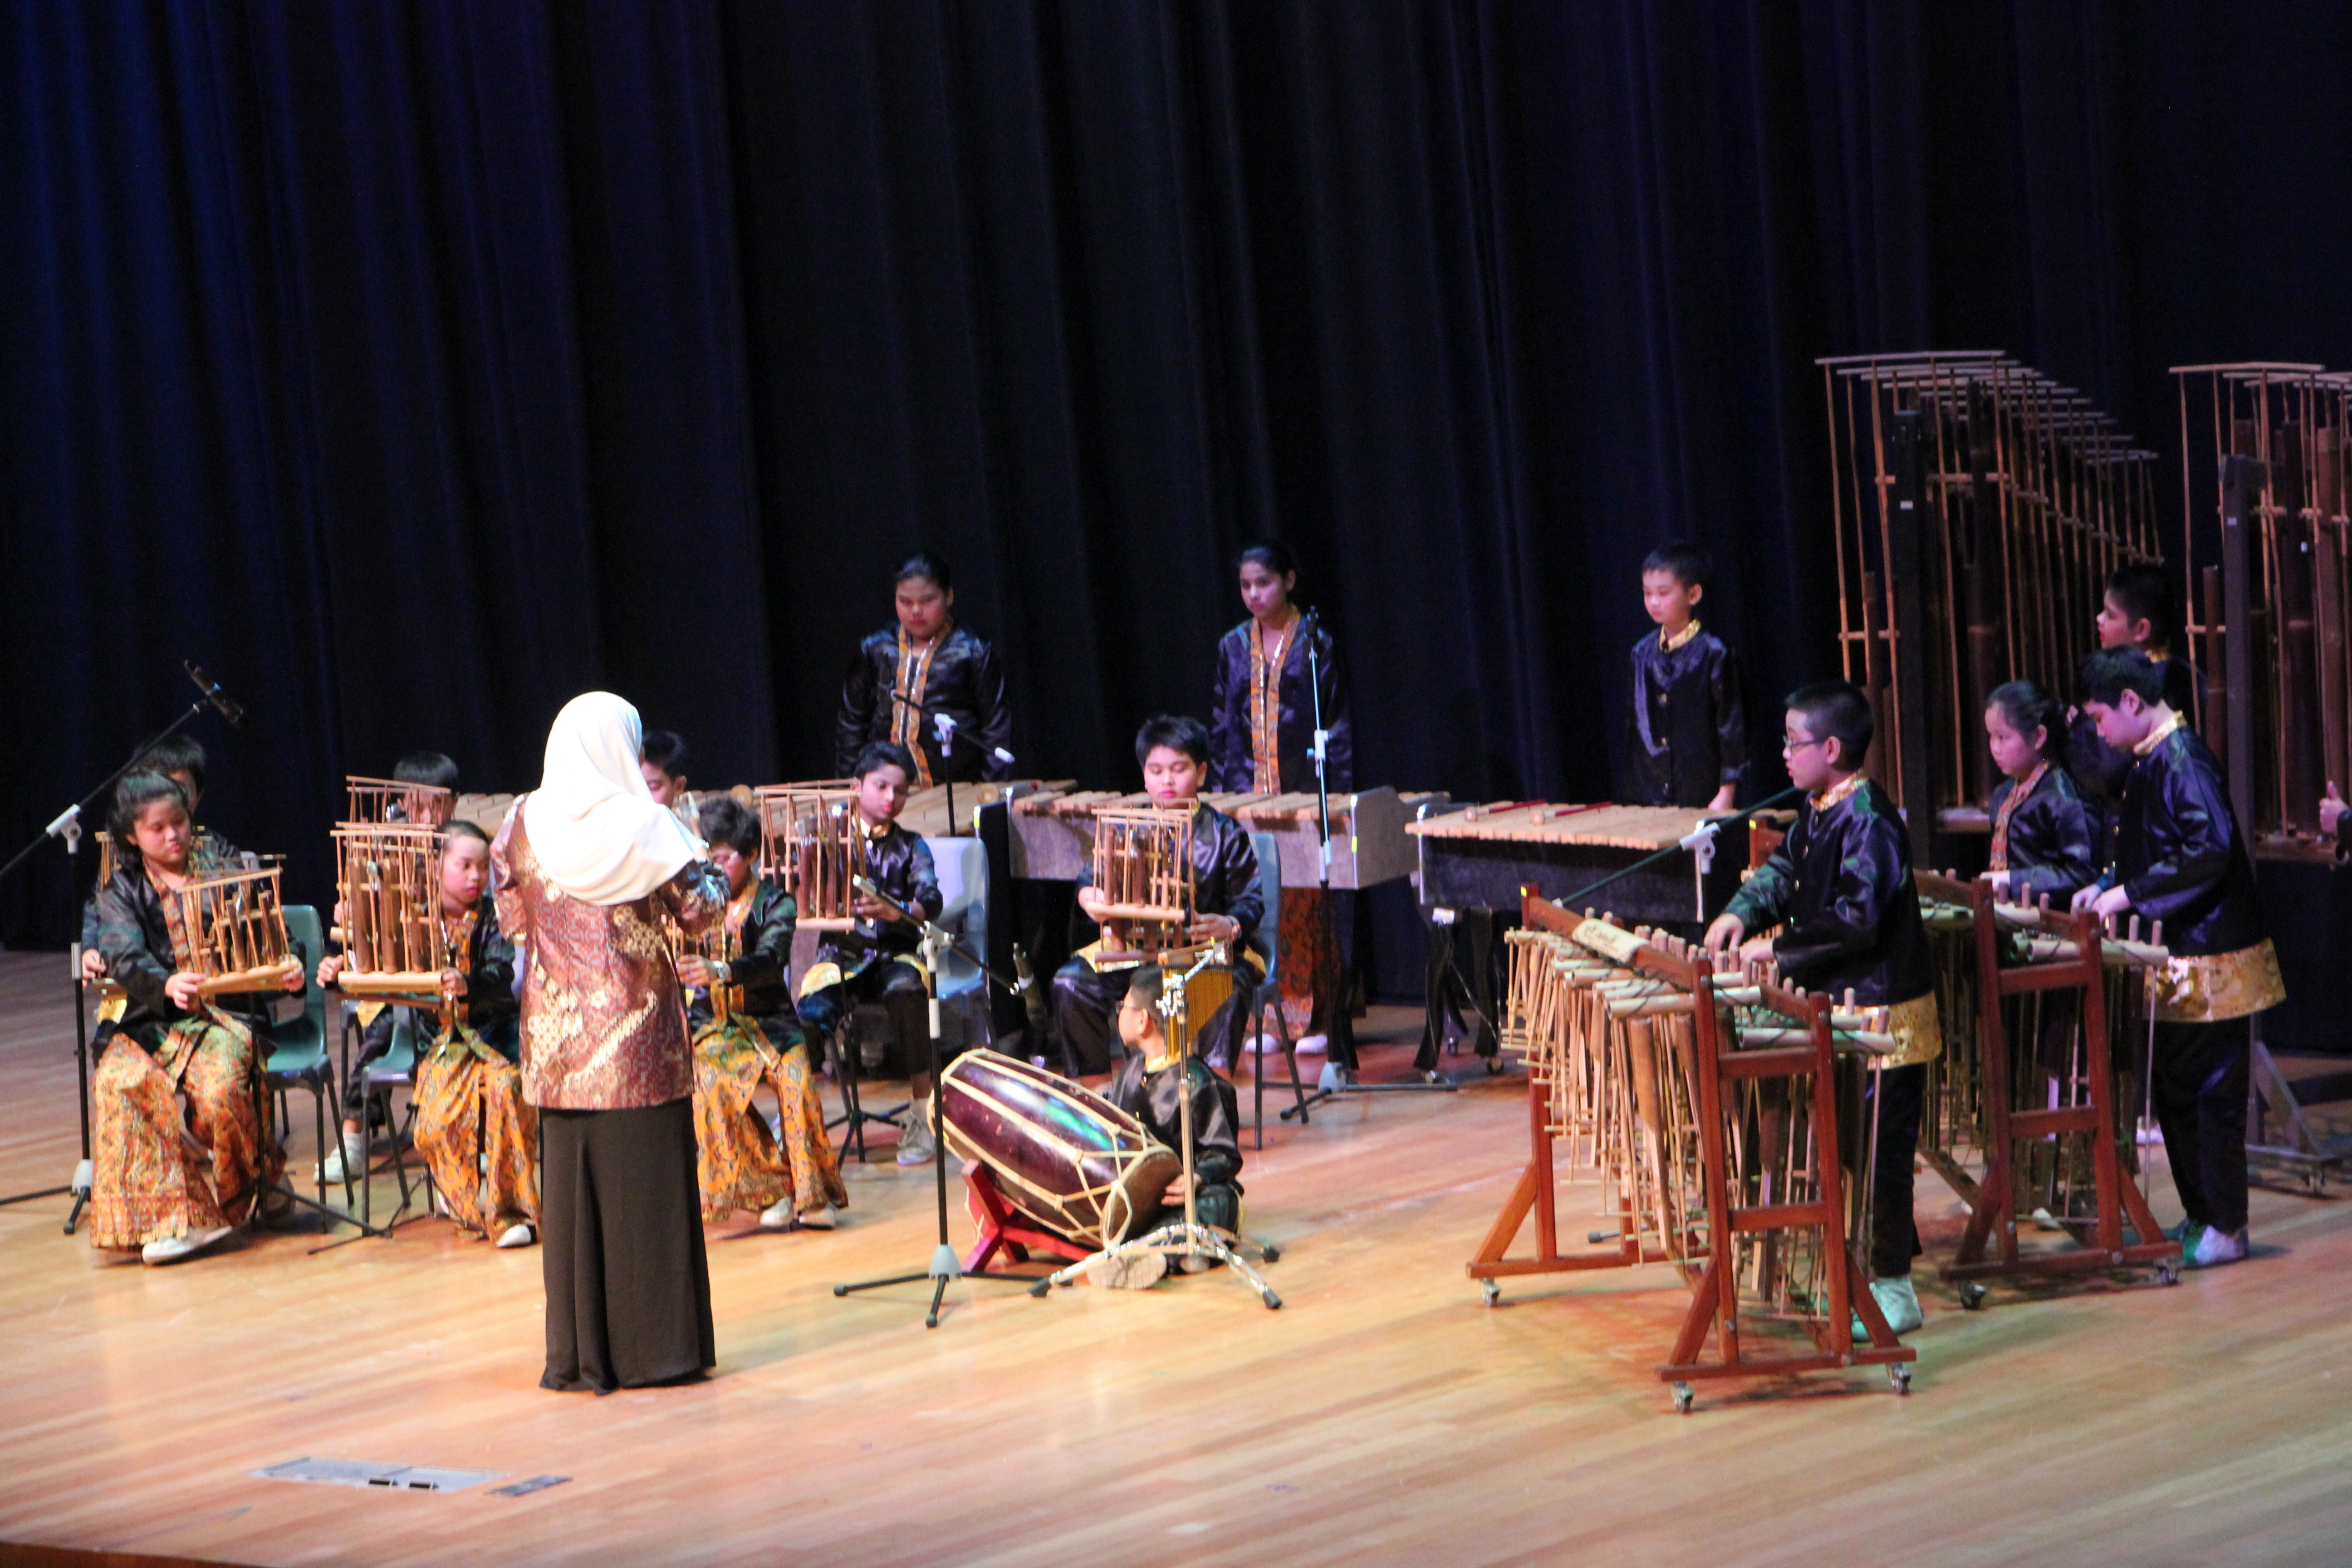 musical 2017 angklung performance